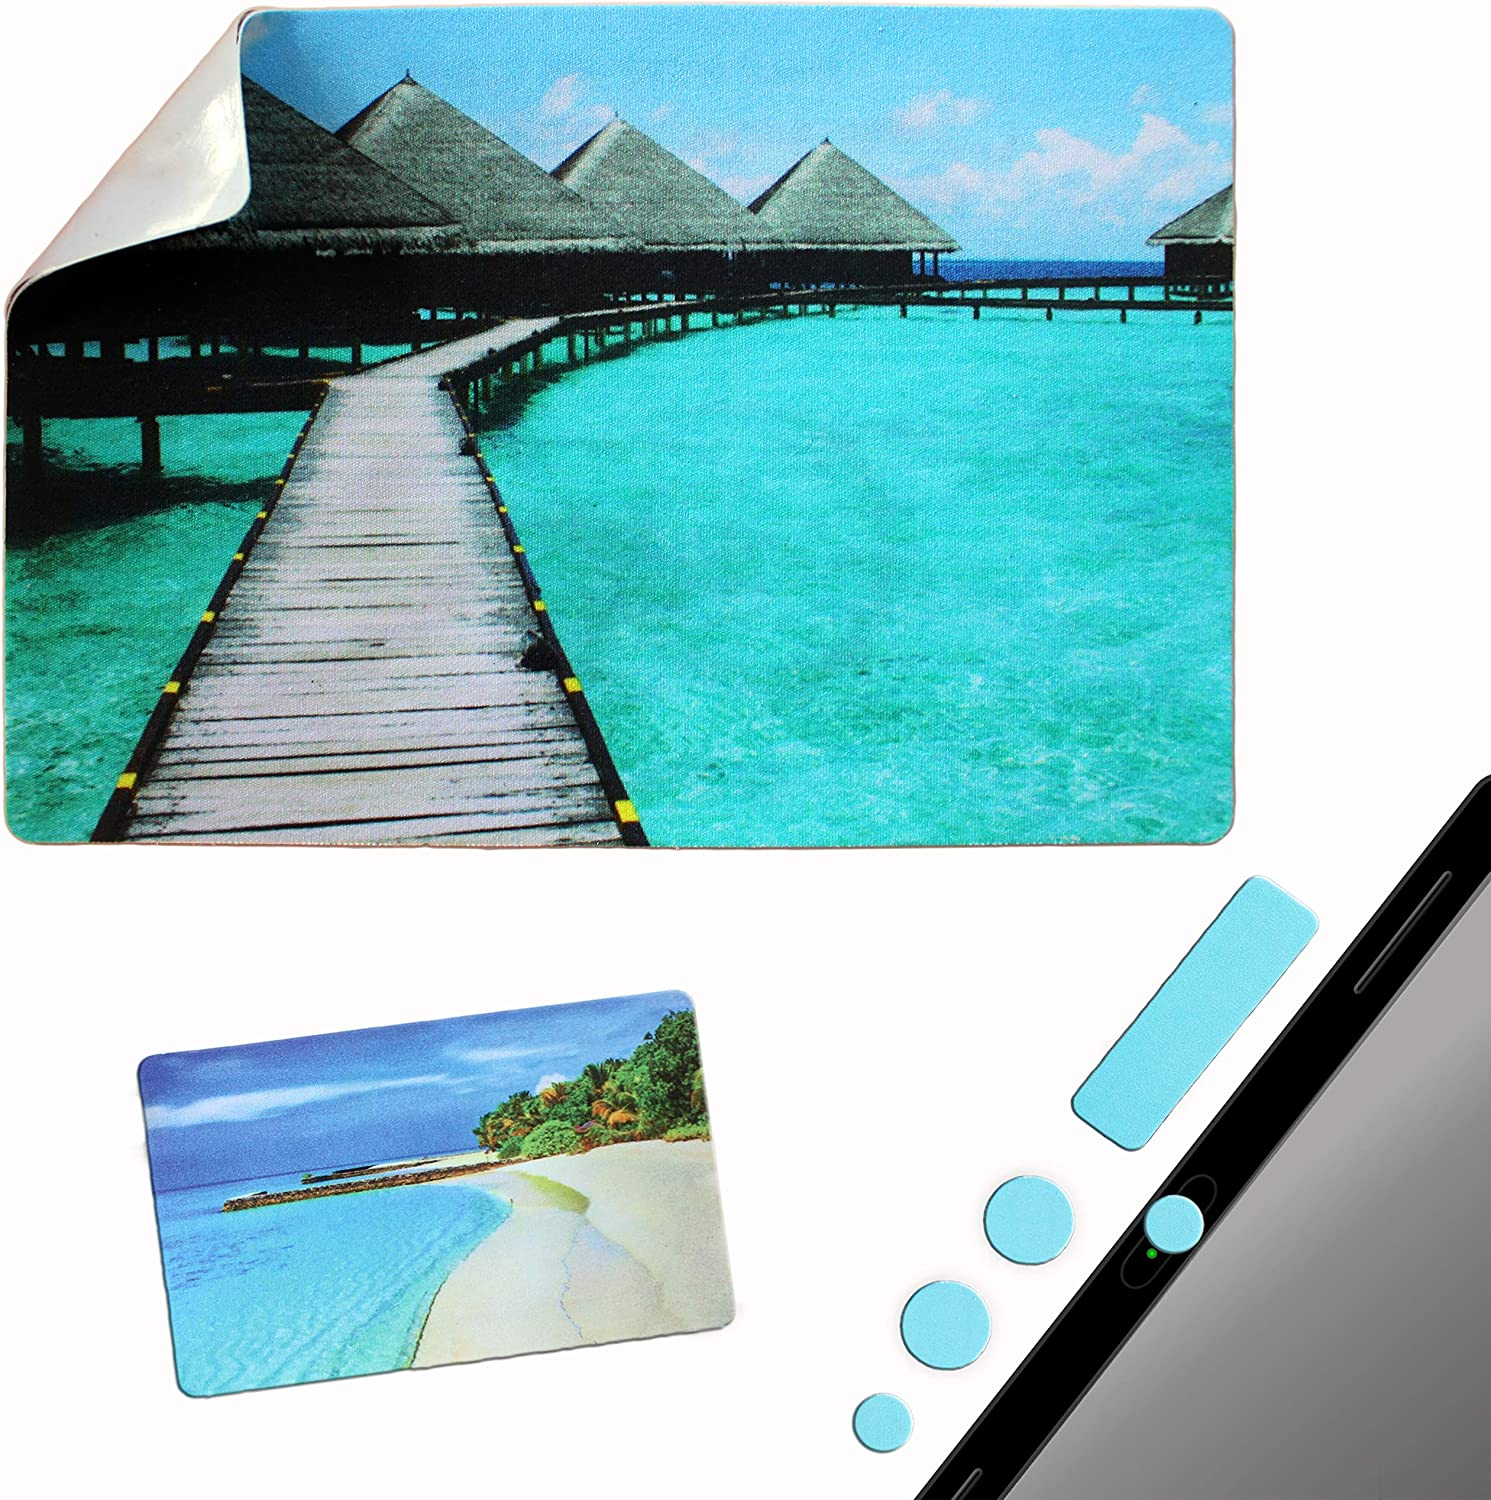 Same day shipping Mouse Pad Adhesive Bottom - Sticks Portable Surface Any W Bombing free shipping to